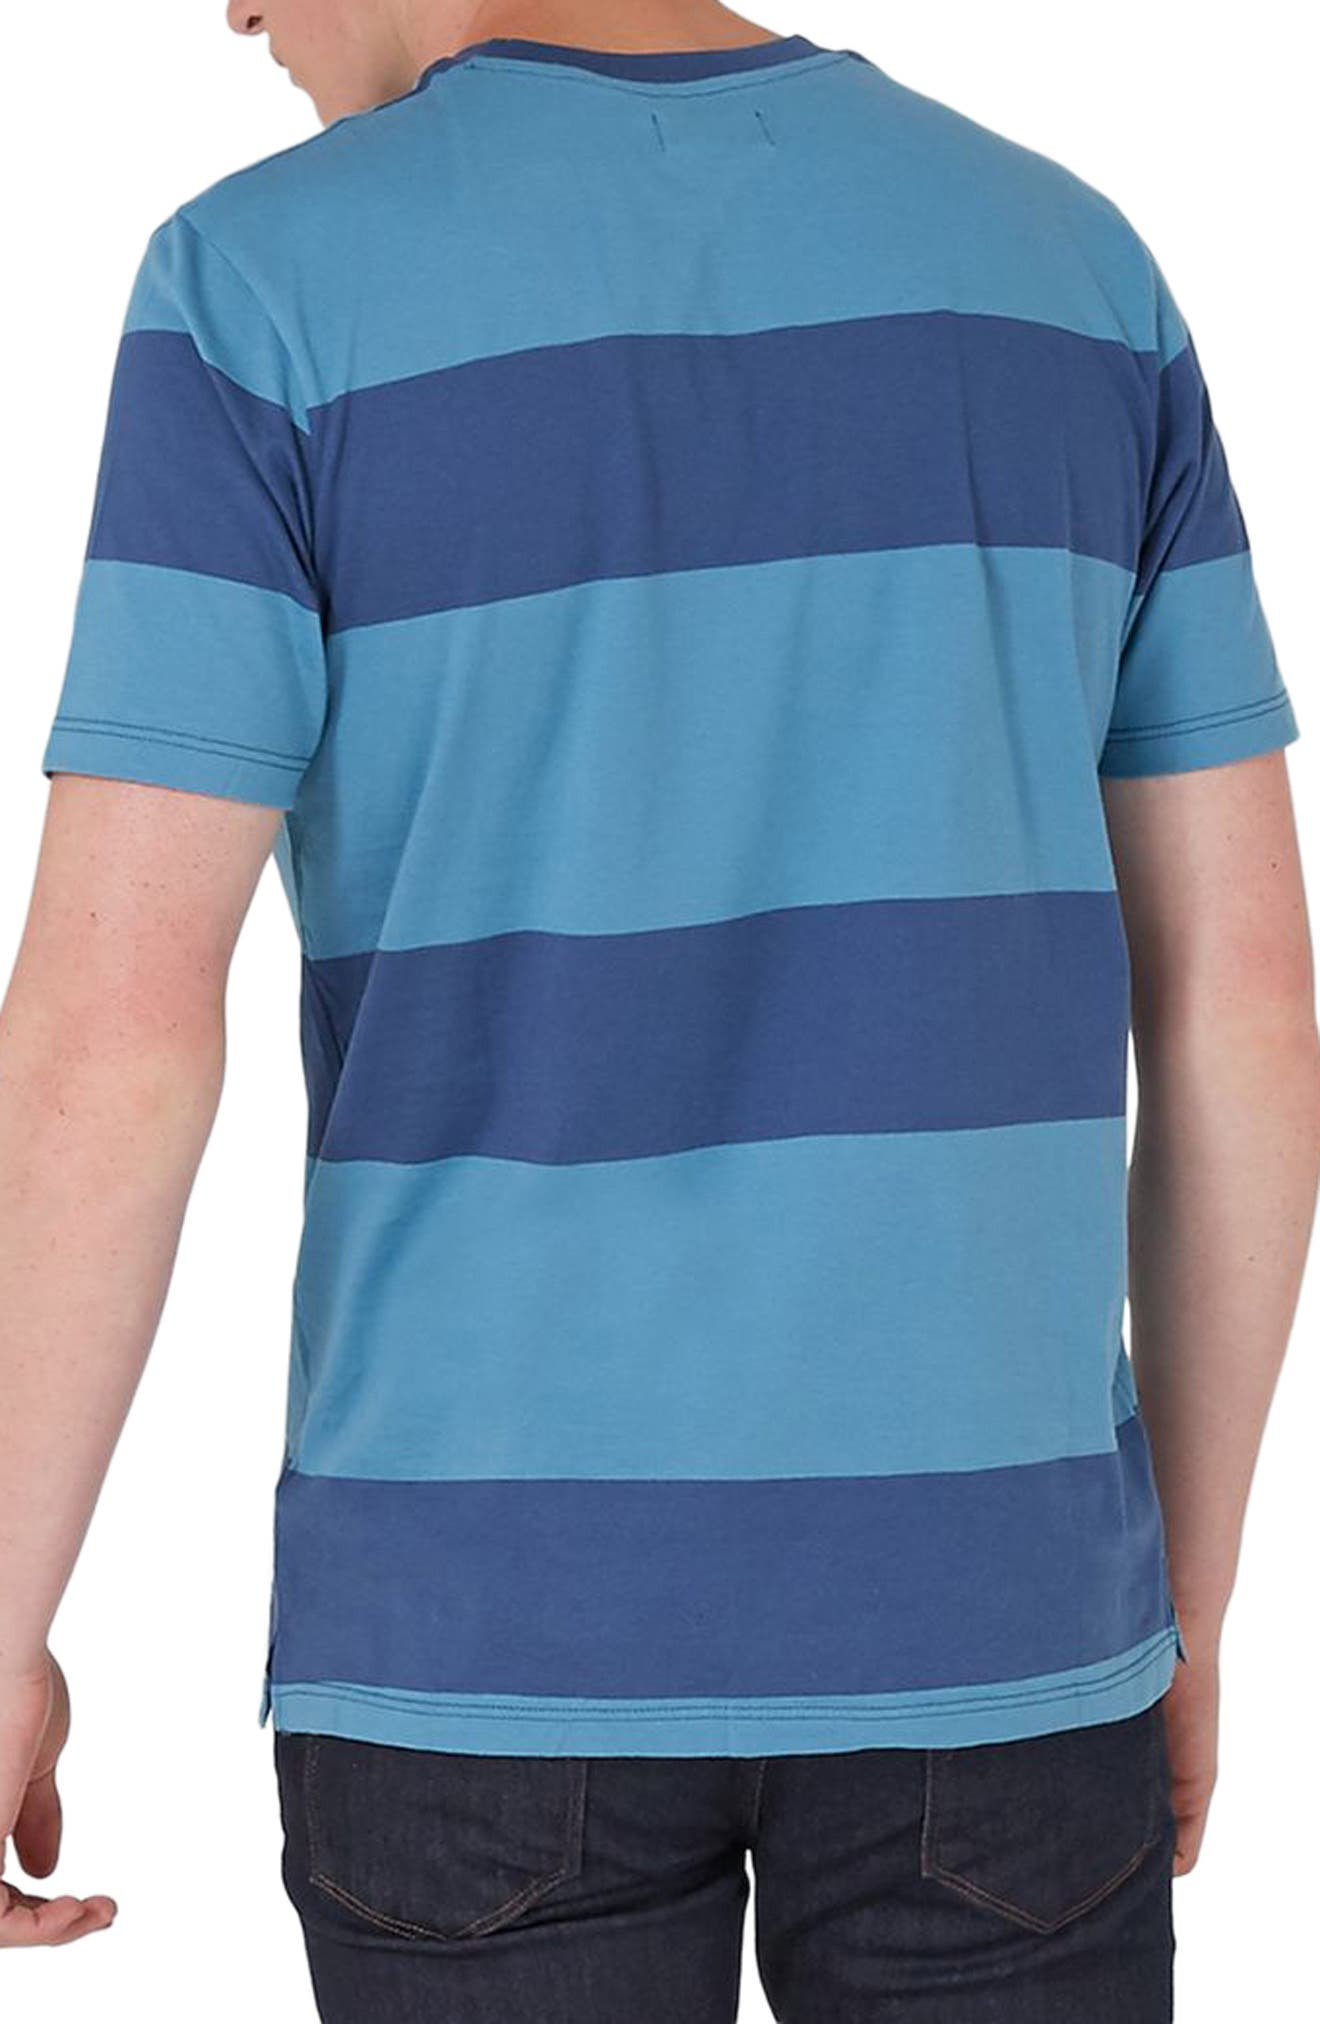 Alternate Image 2  - Topman Stripe T-Shirt